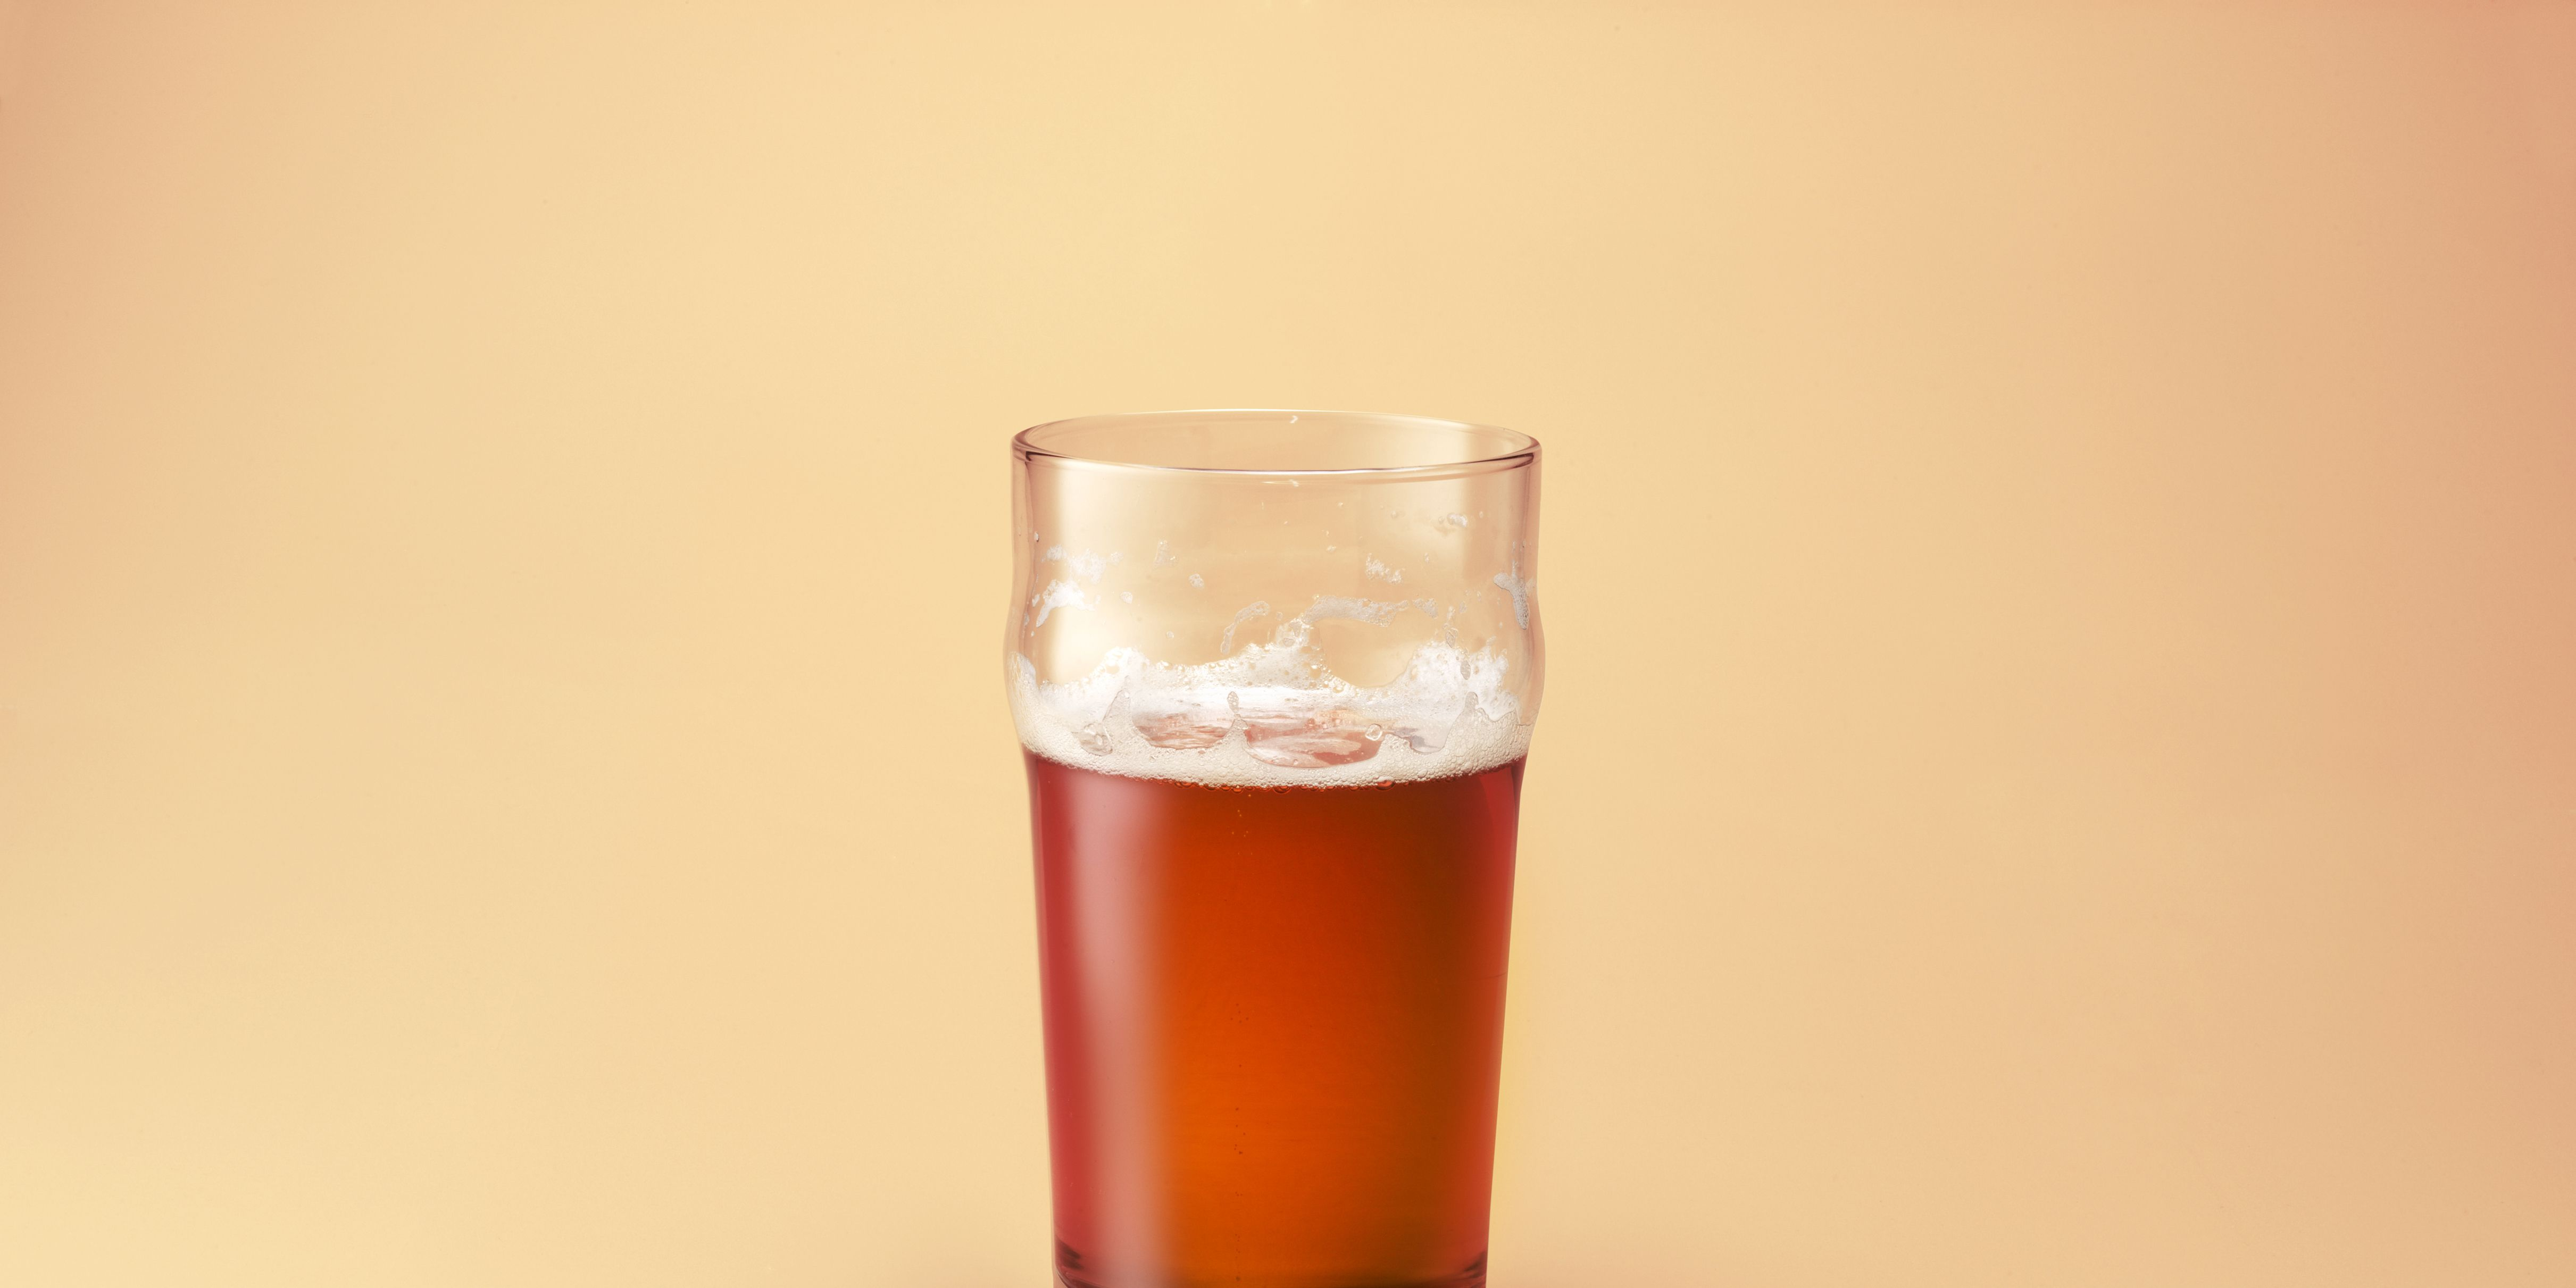 A half drunk pint of beer on a cream background